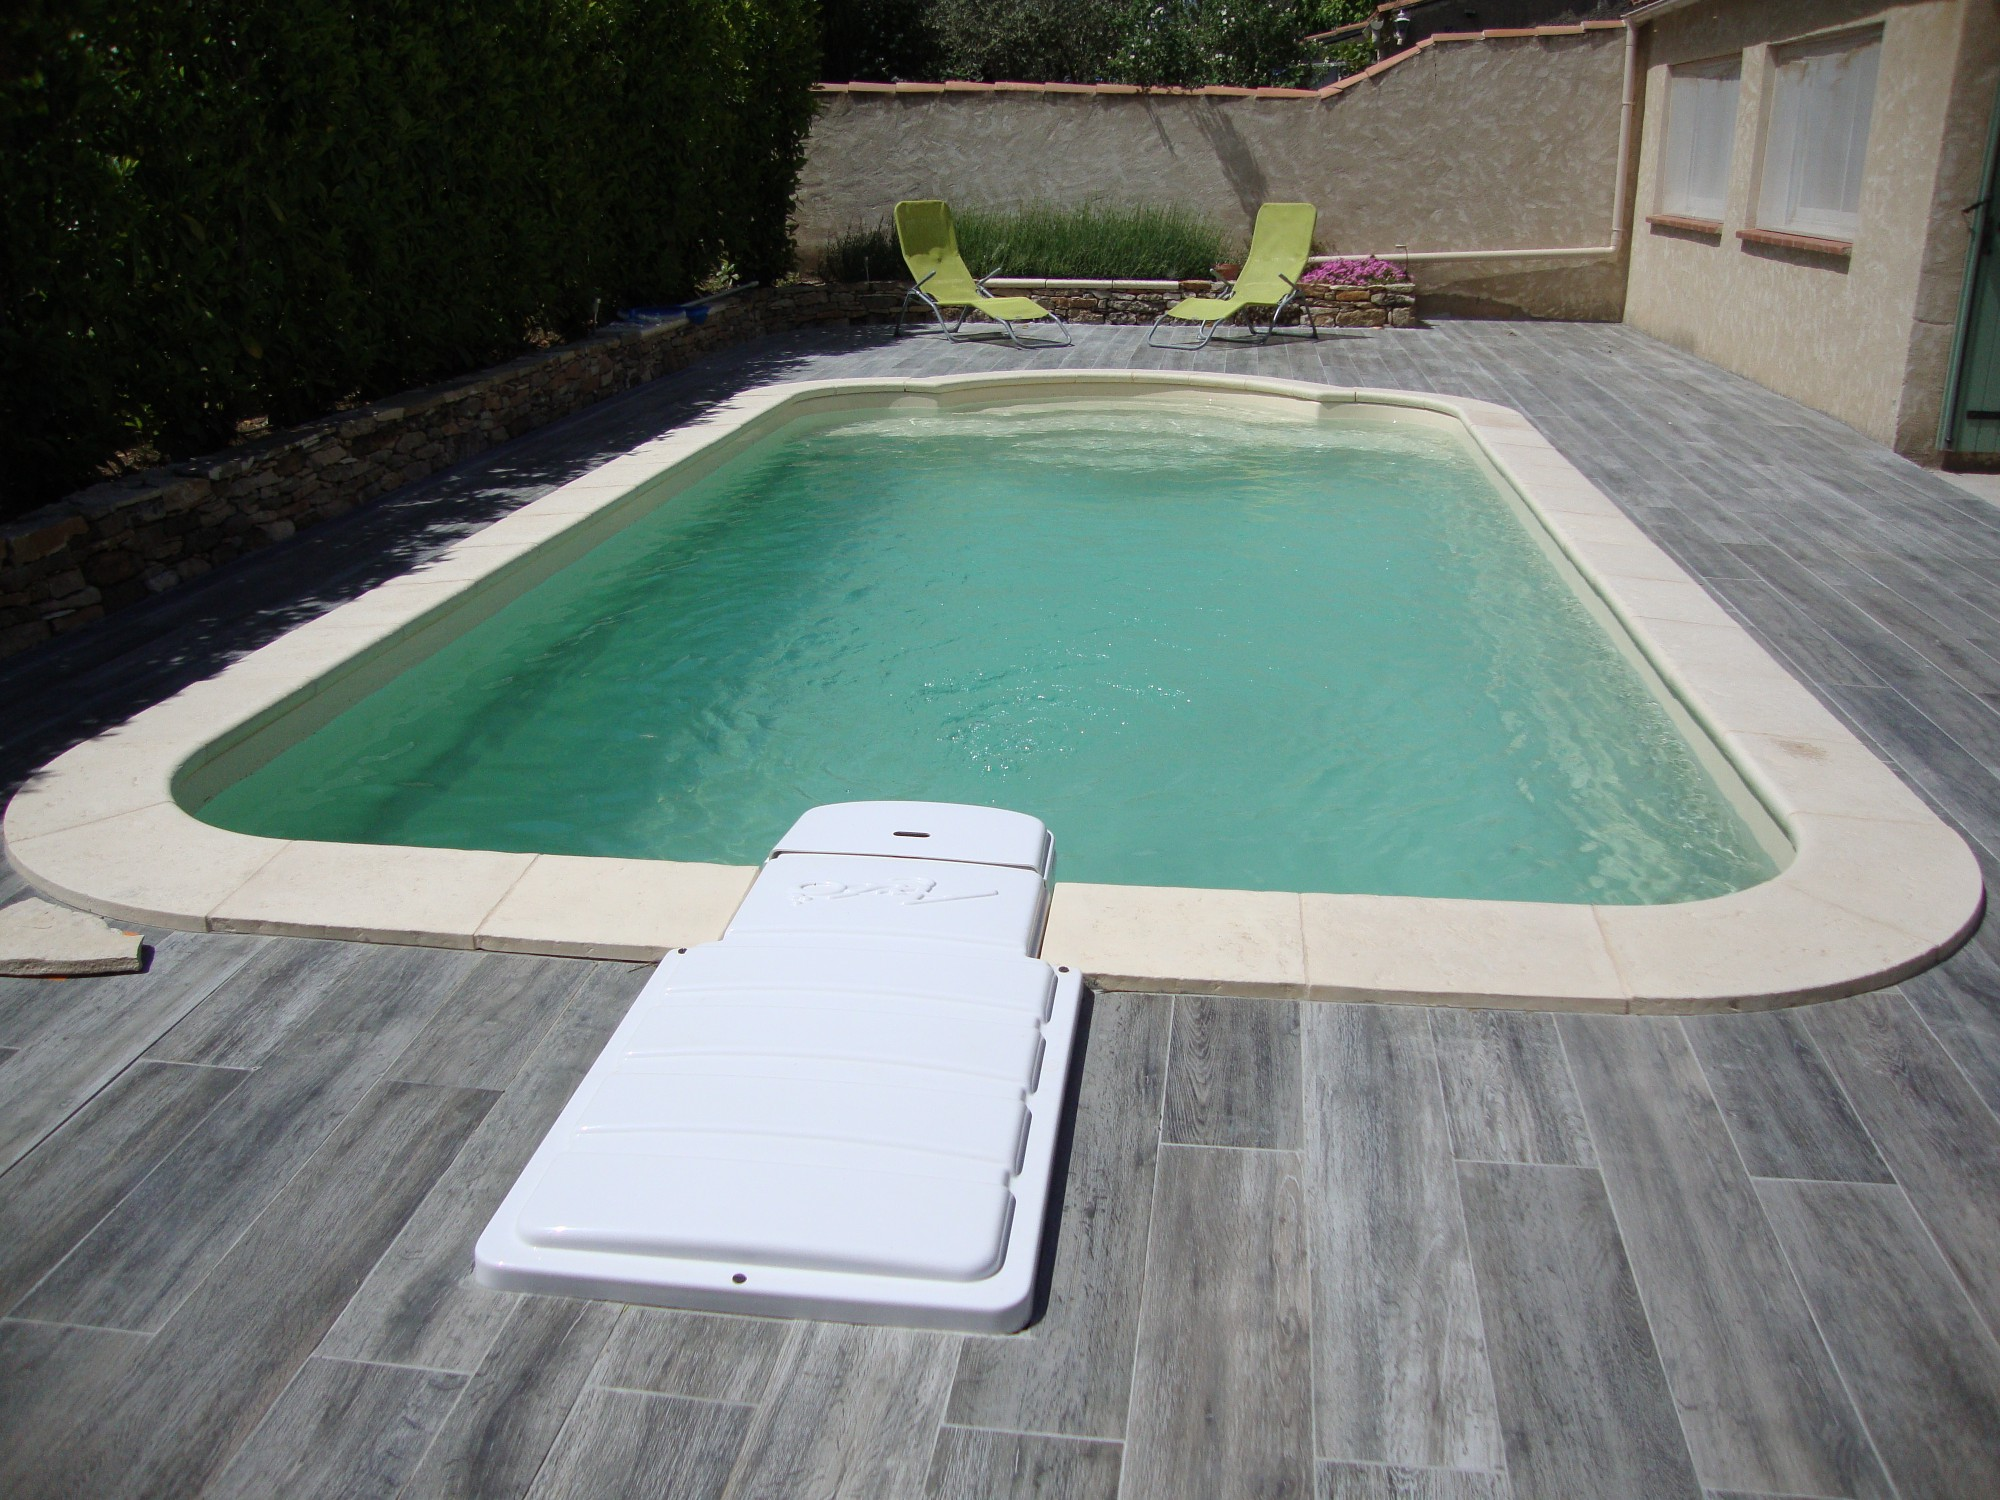 piscine polyester rectangulaire avec escalier roman 730ft ferr piscines. Black Bedroom Furniture Sets. Home Design Ideas